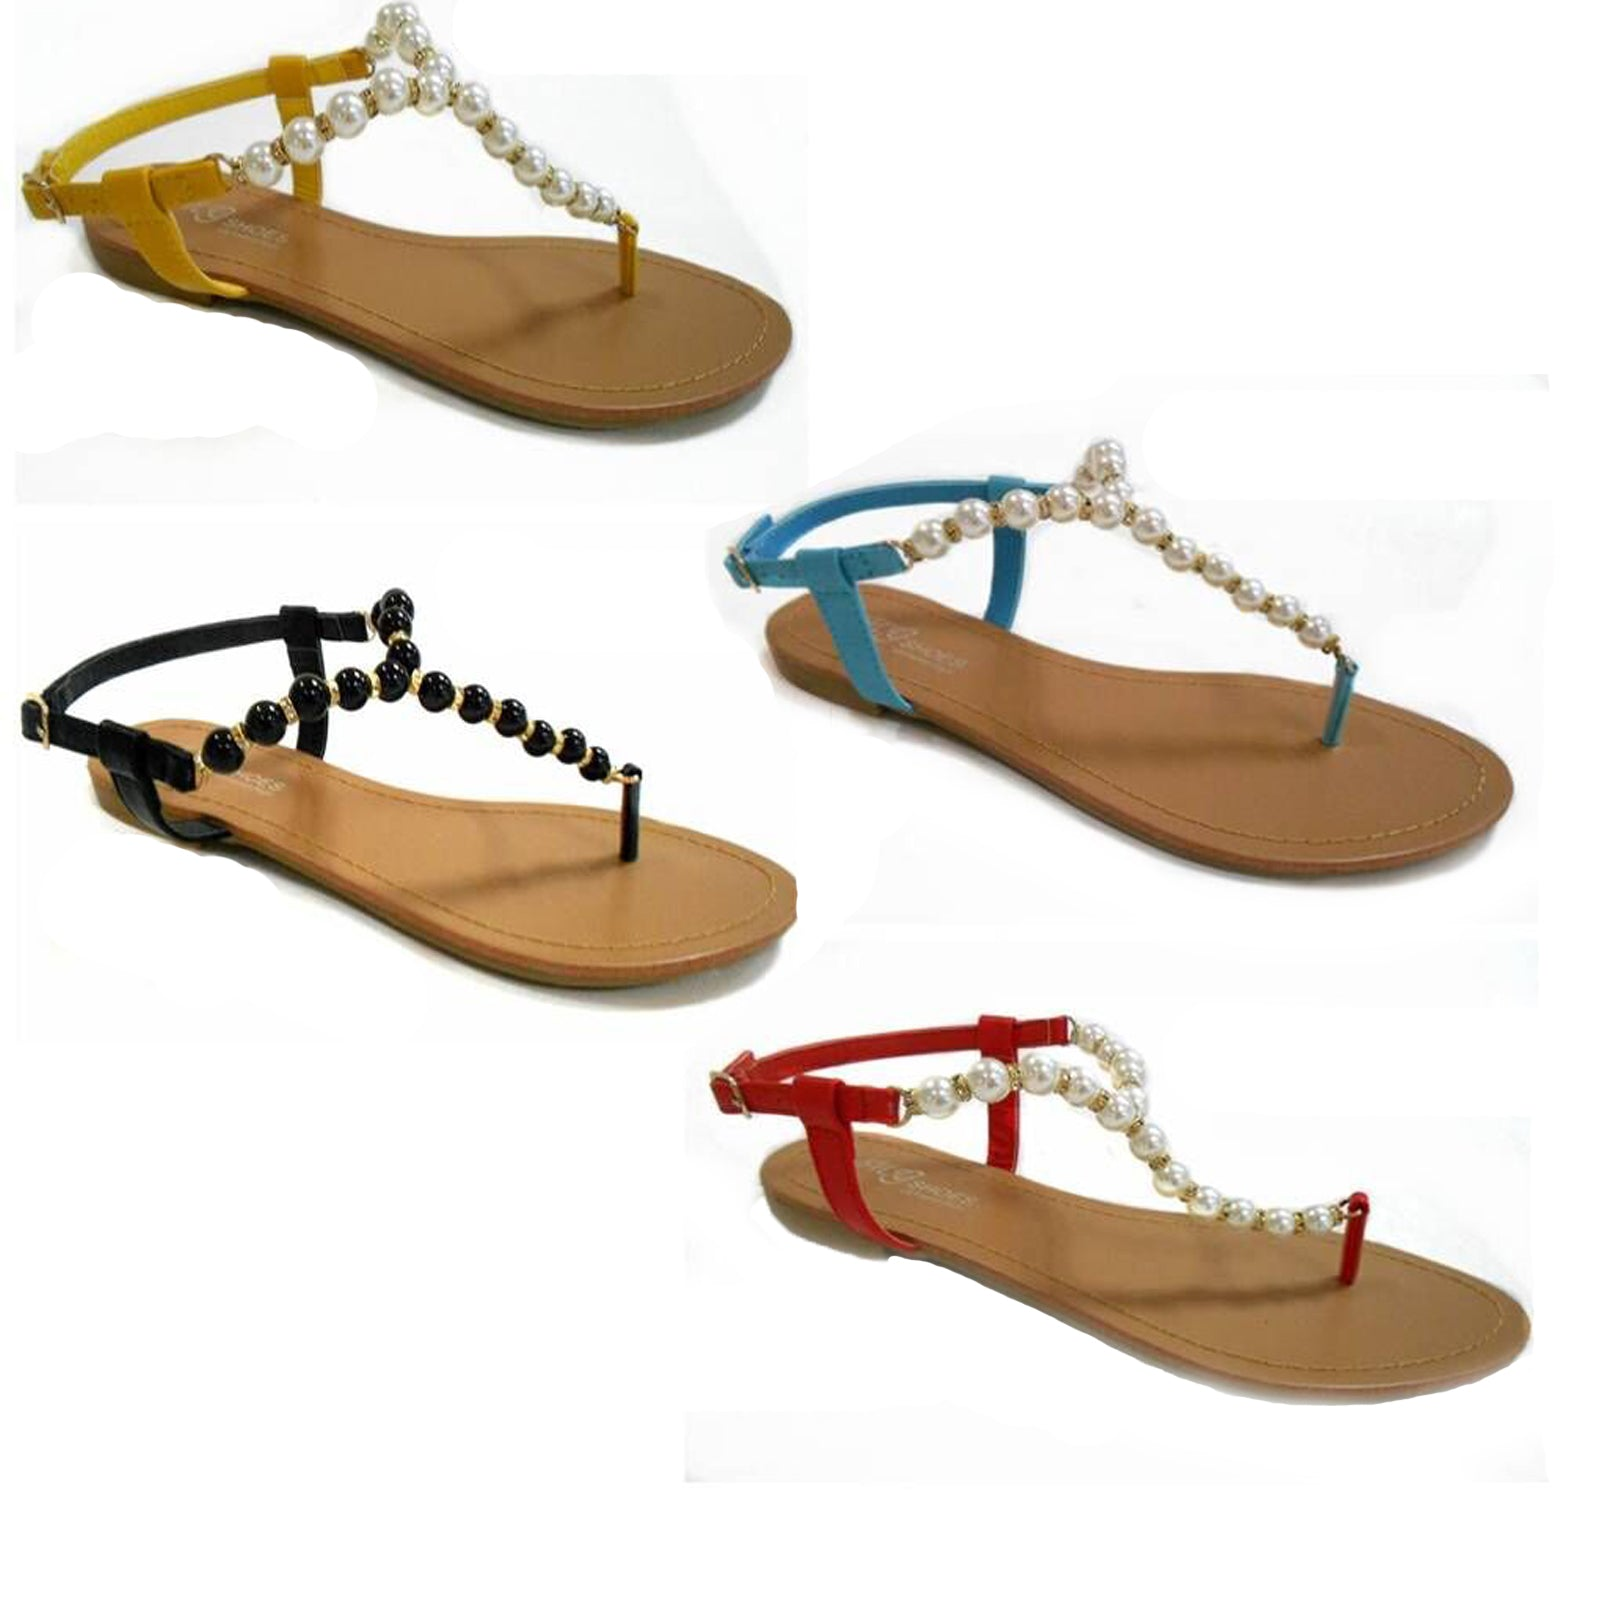 6f678298b Wholesale Women s Shoes Beaded Thong Sandals NCPB3 – NYWholesale.com